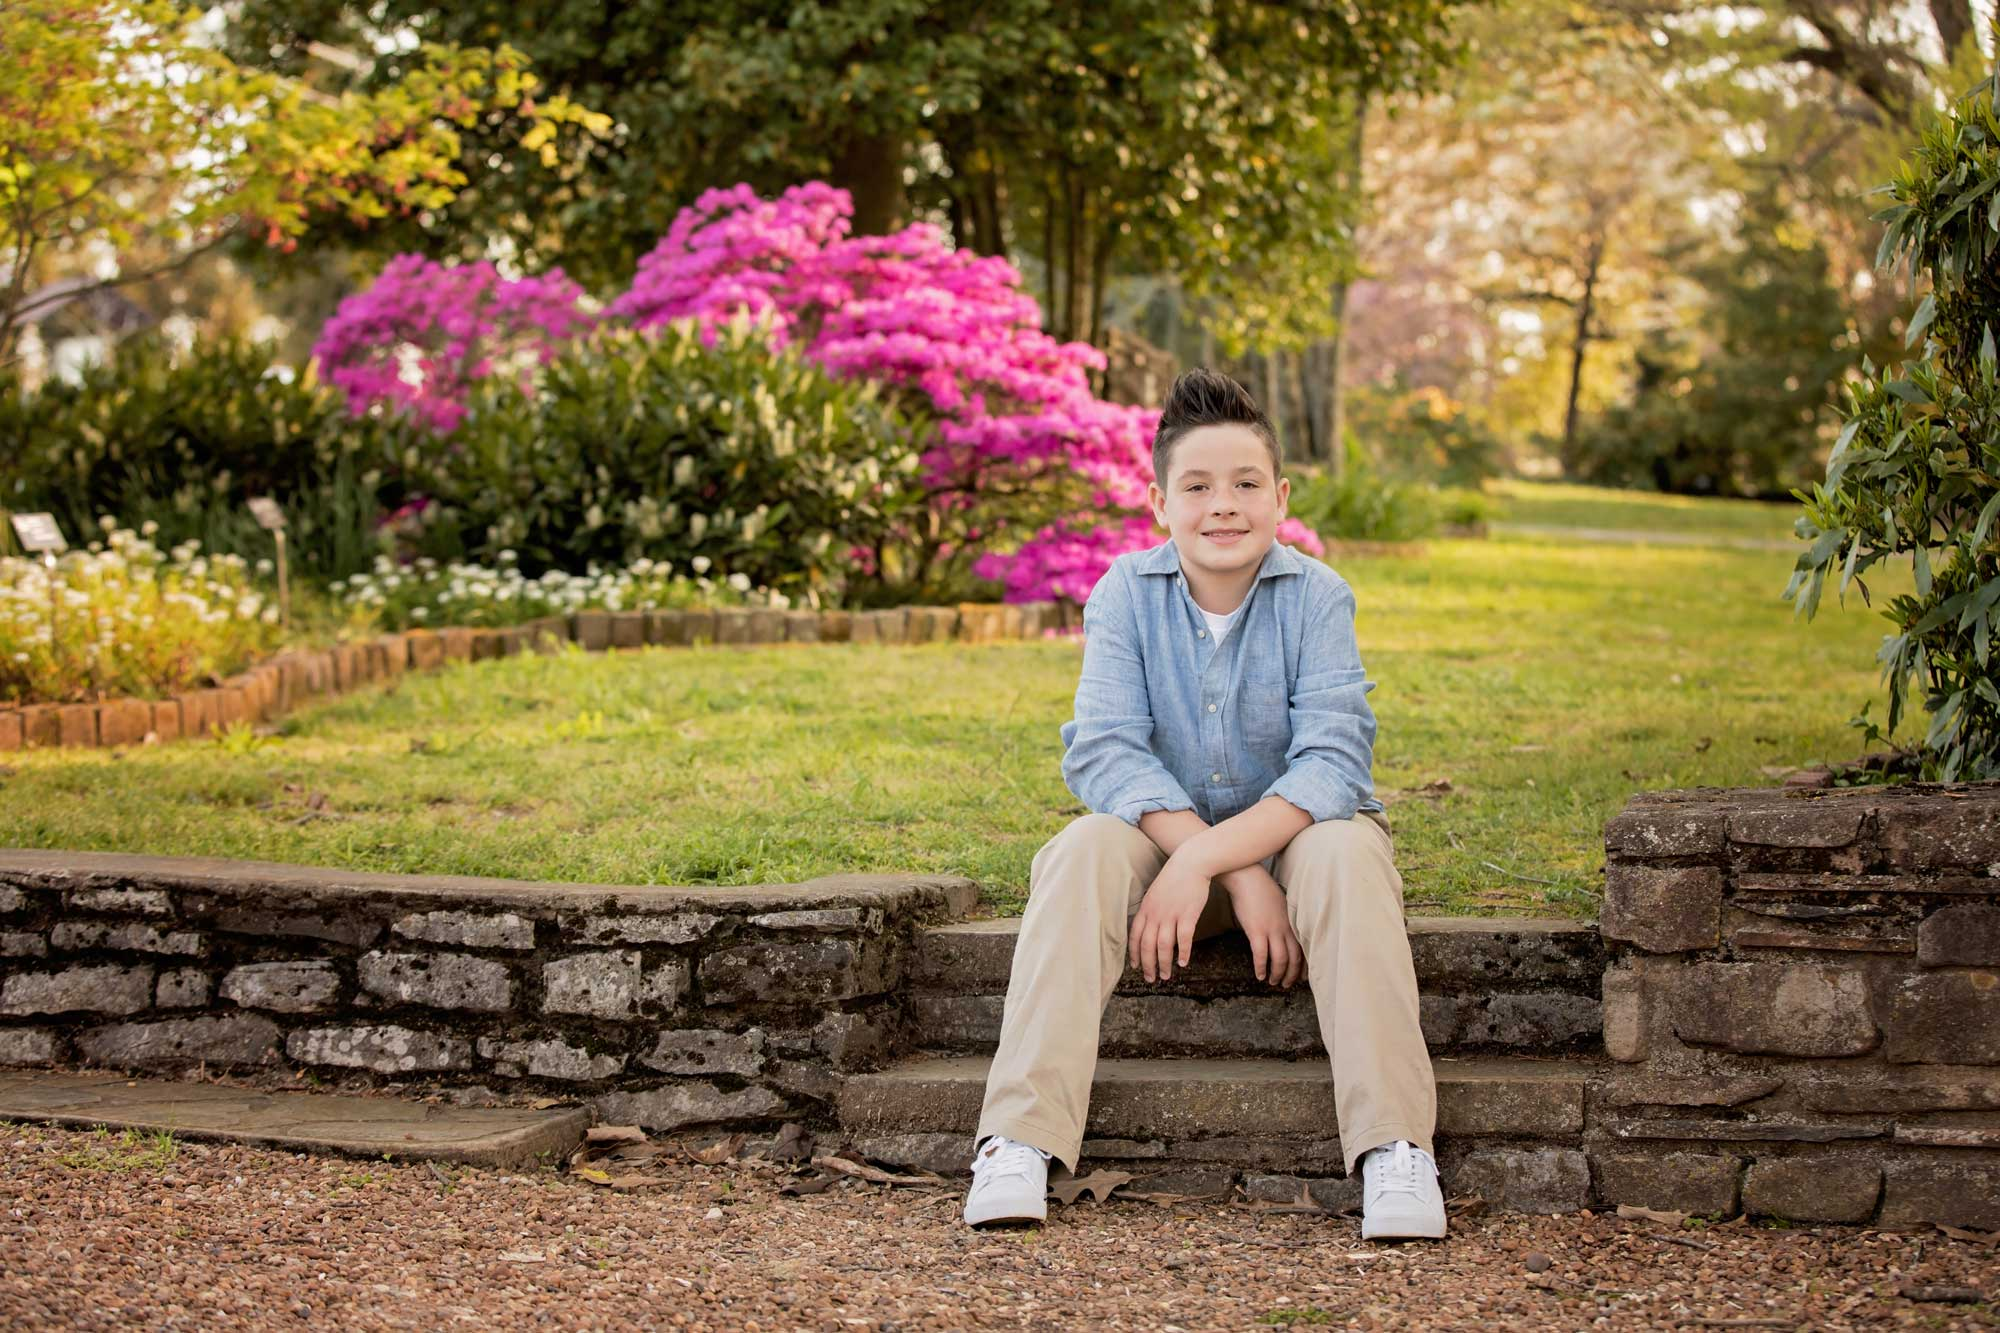 knoxville-family-photographer-botanical-gardens-boy-on-steps.jpg